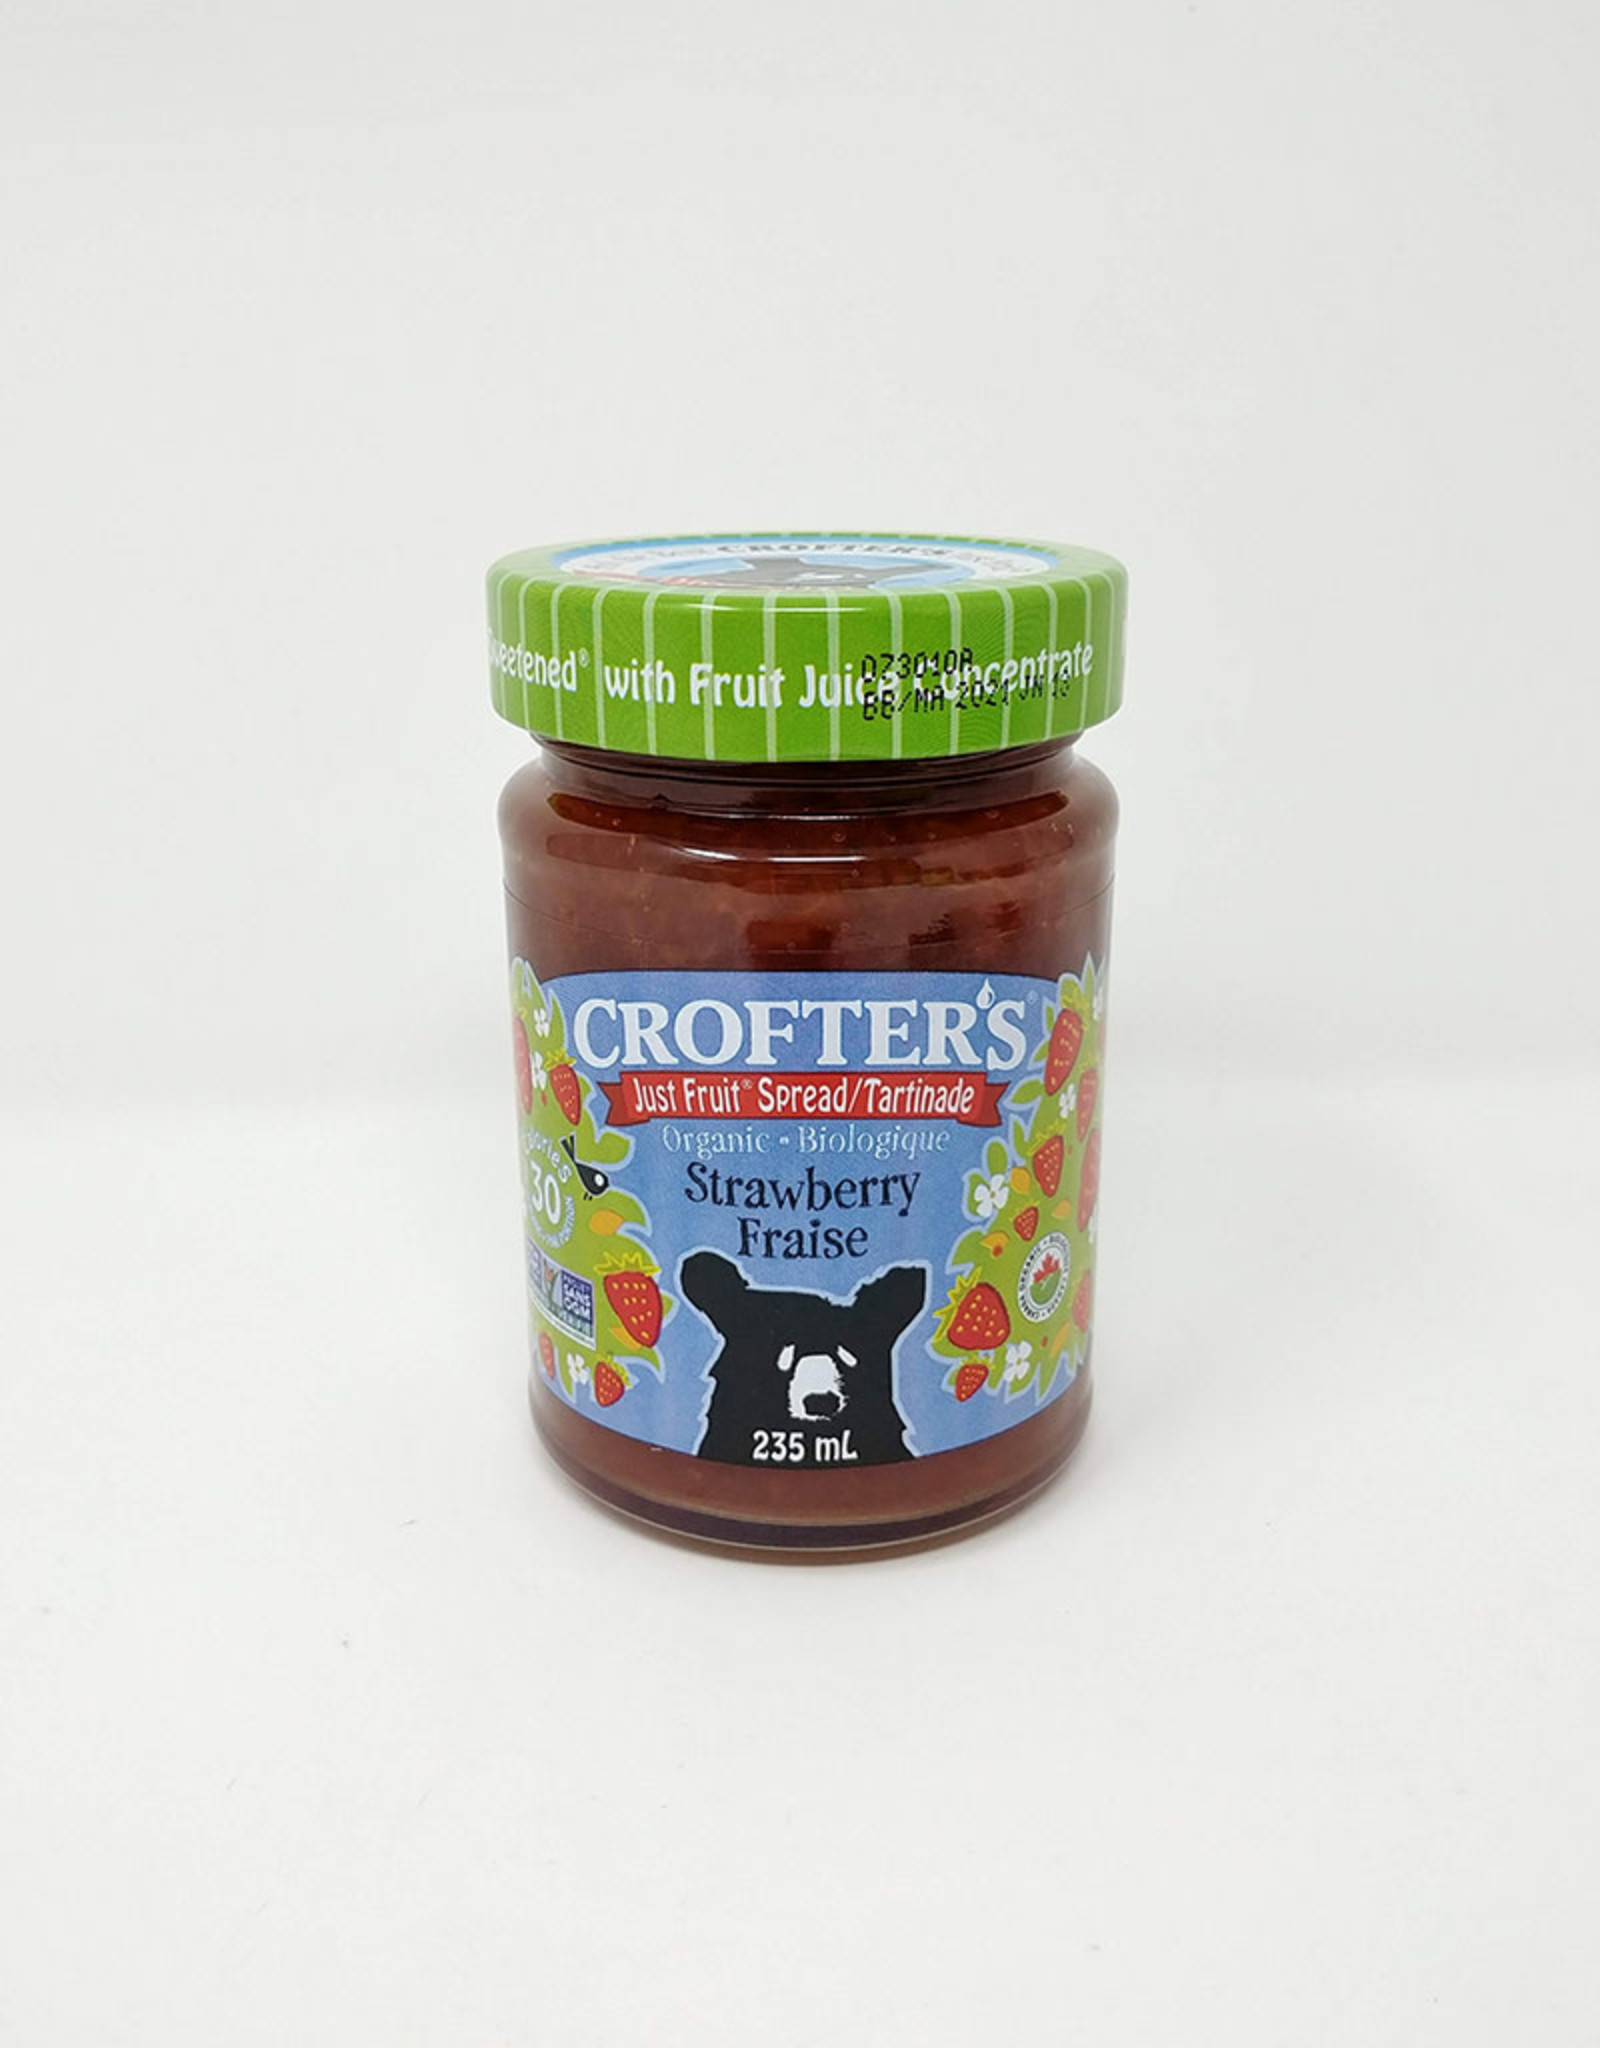 Crofters Organic Crofters Organic - Just Fruit Spread, Strawberry (235ml)